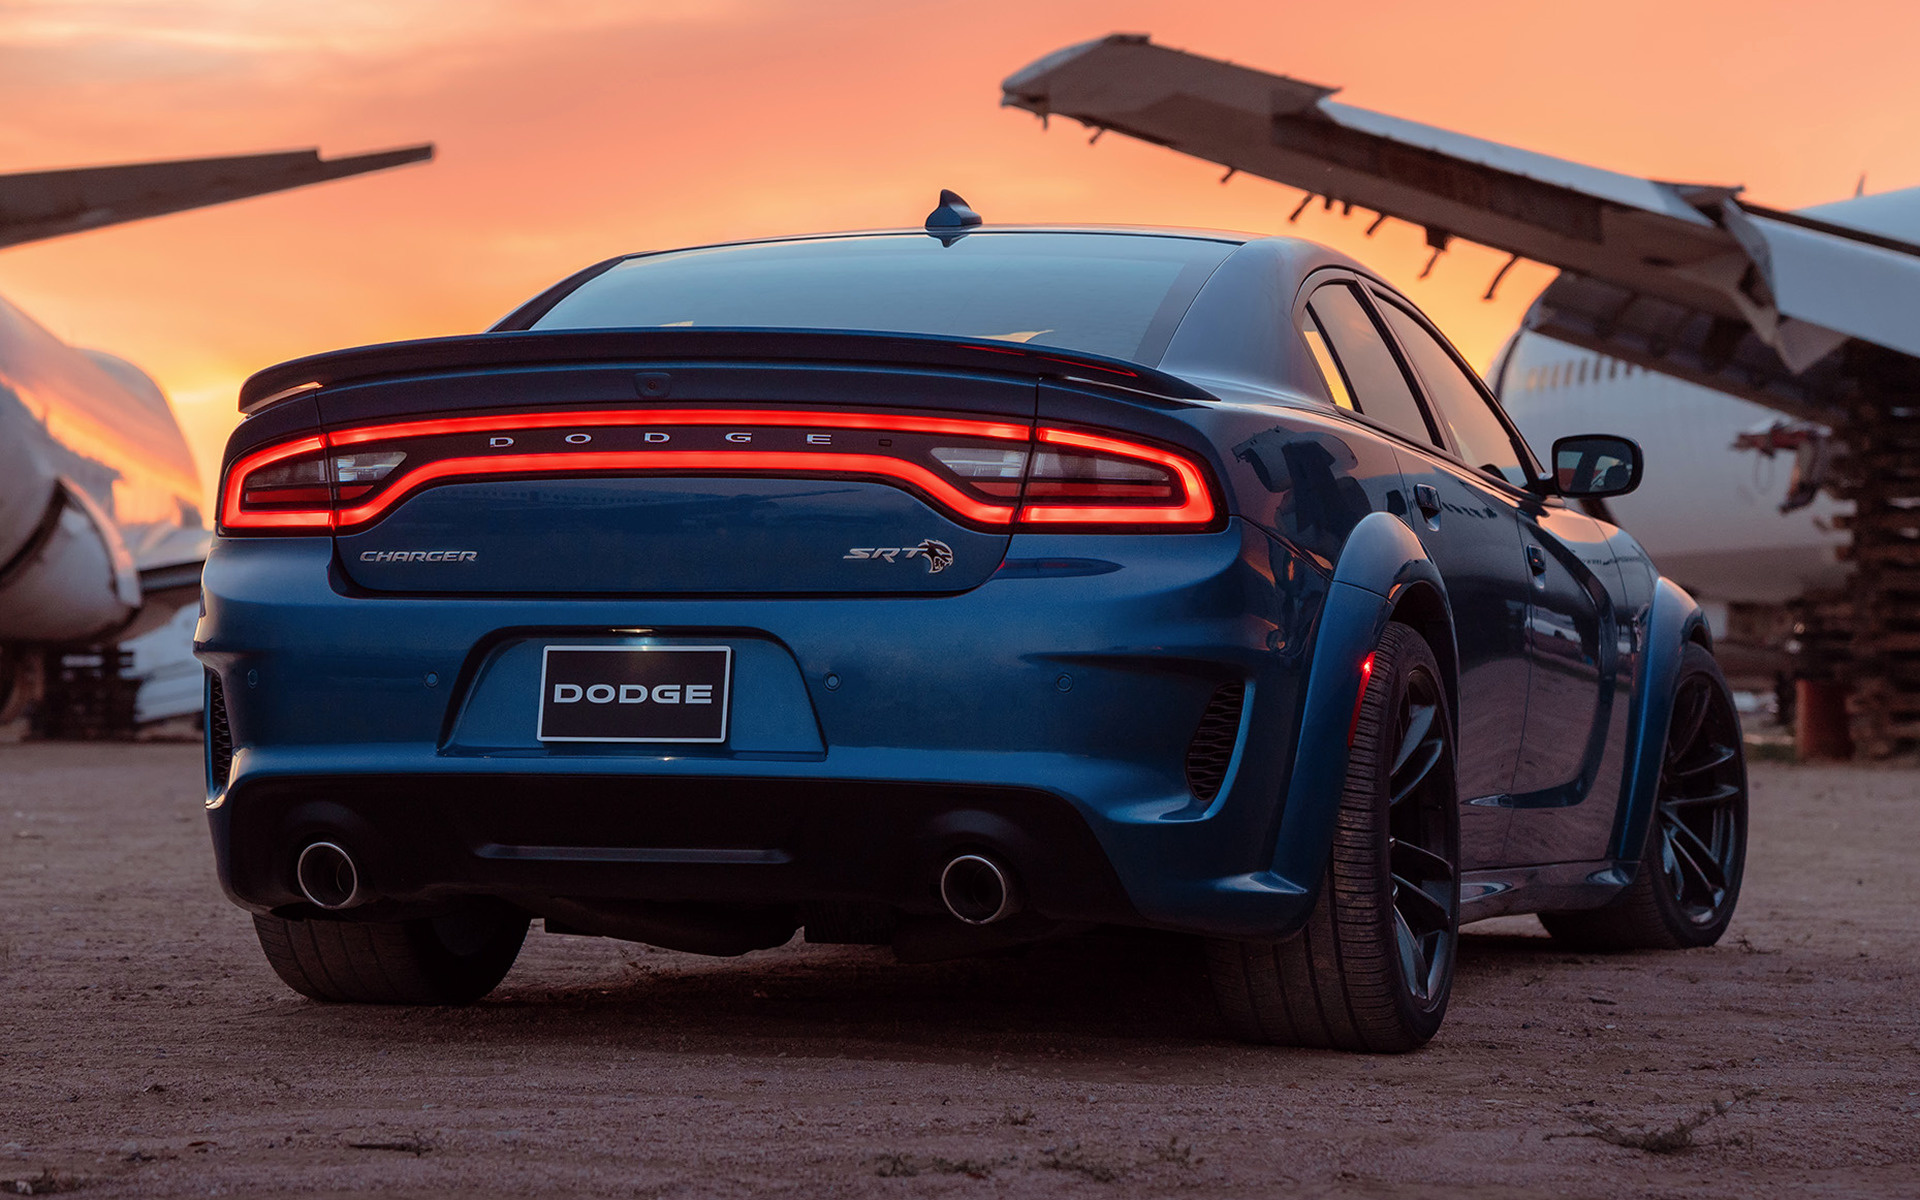 charger dodge widebody hellcat srt demon wallpapers hd challenger ws power cars